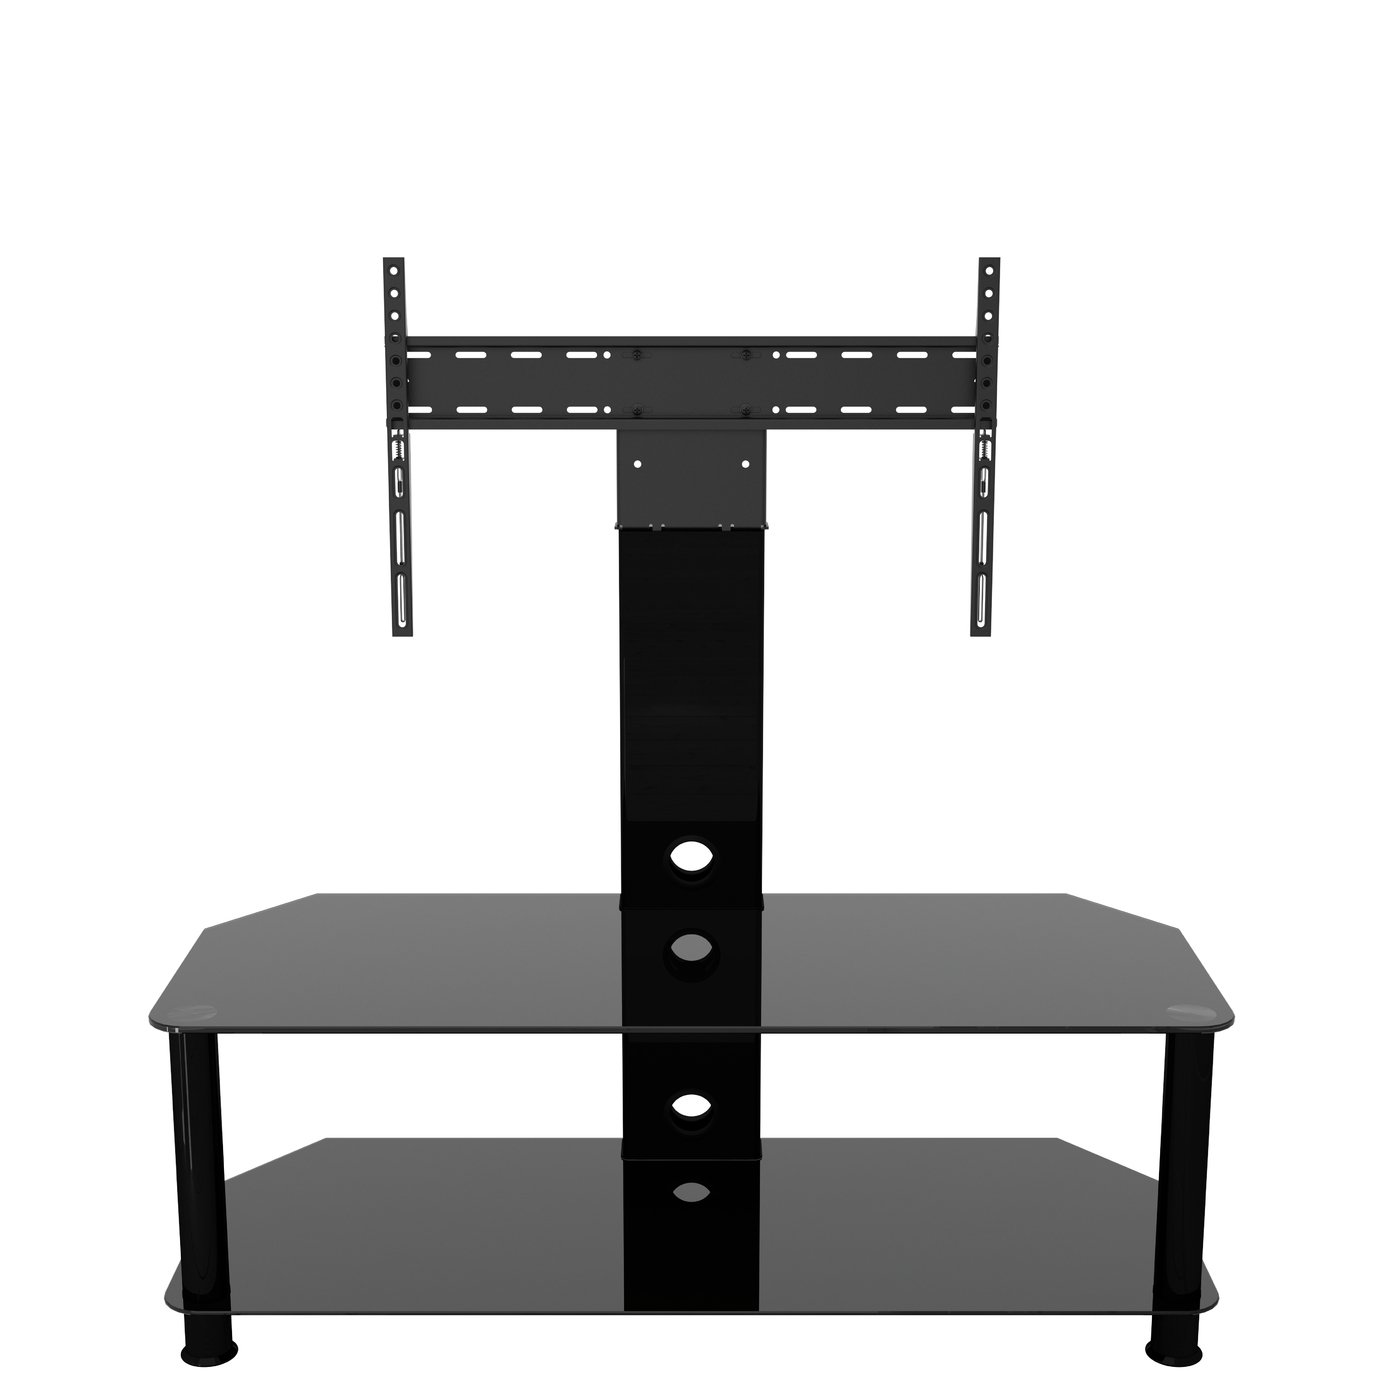 Avf Classic Up To 65 Inch Tv Stand Black 7921742 Argos Price Tracker Pricehistory Co Uk